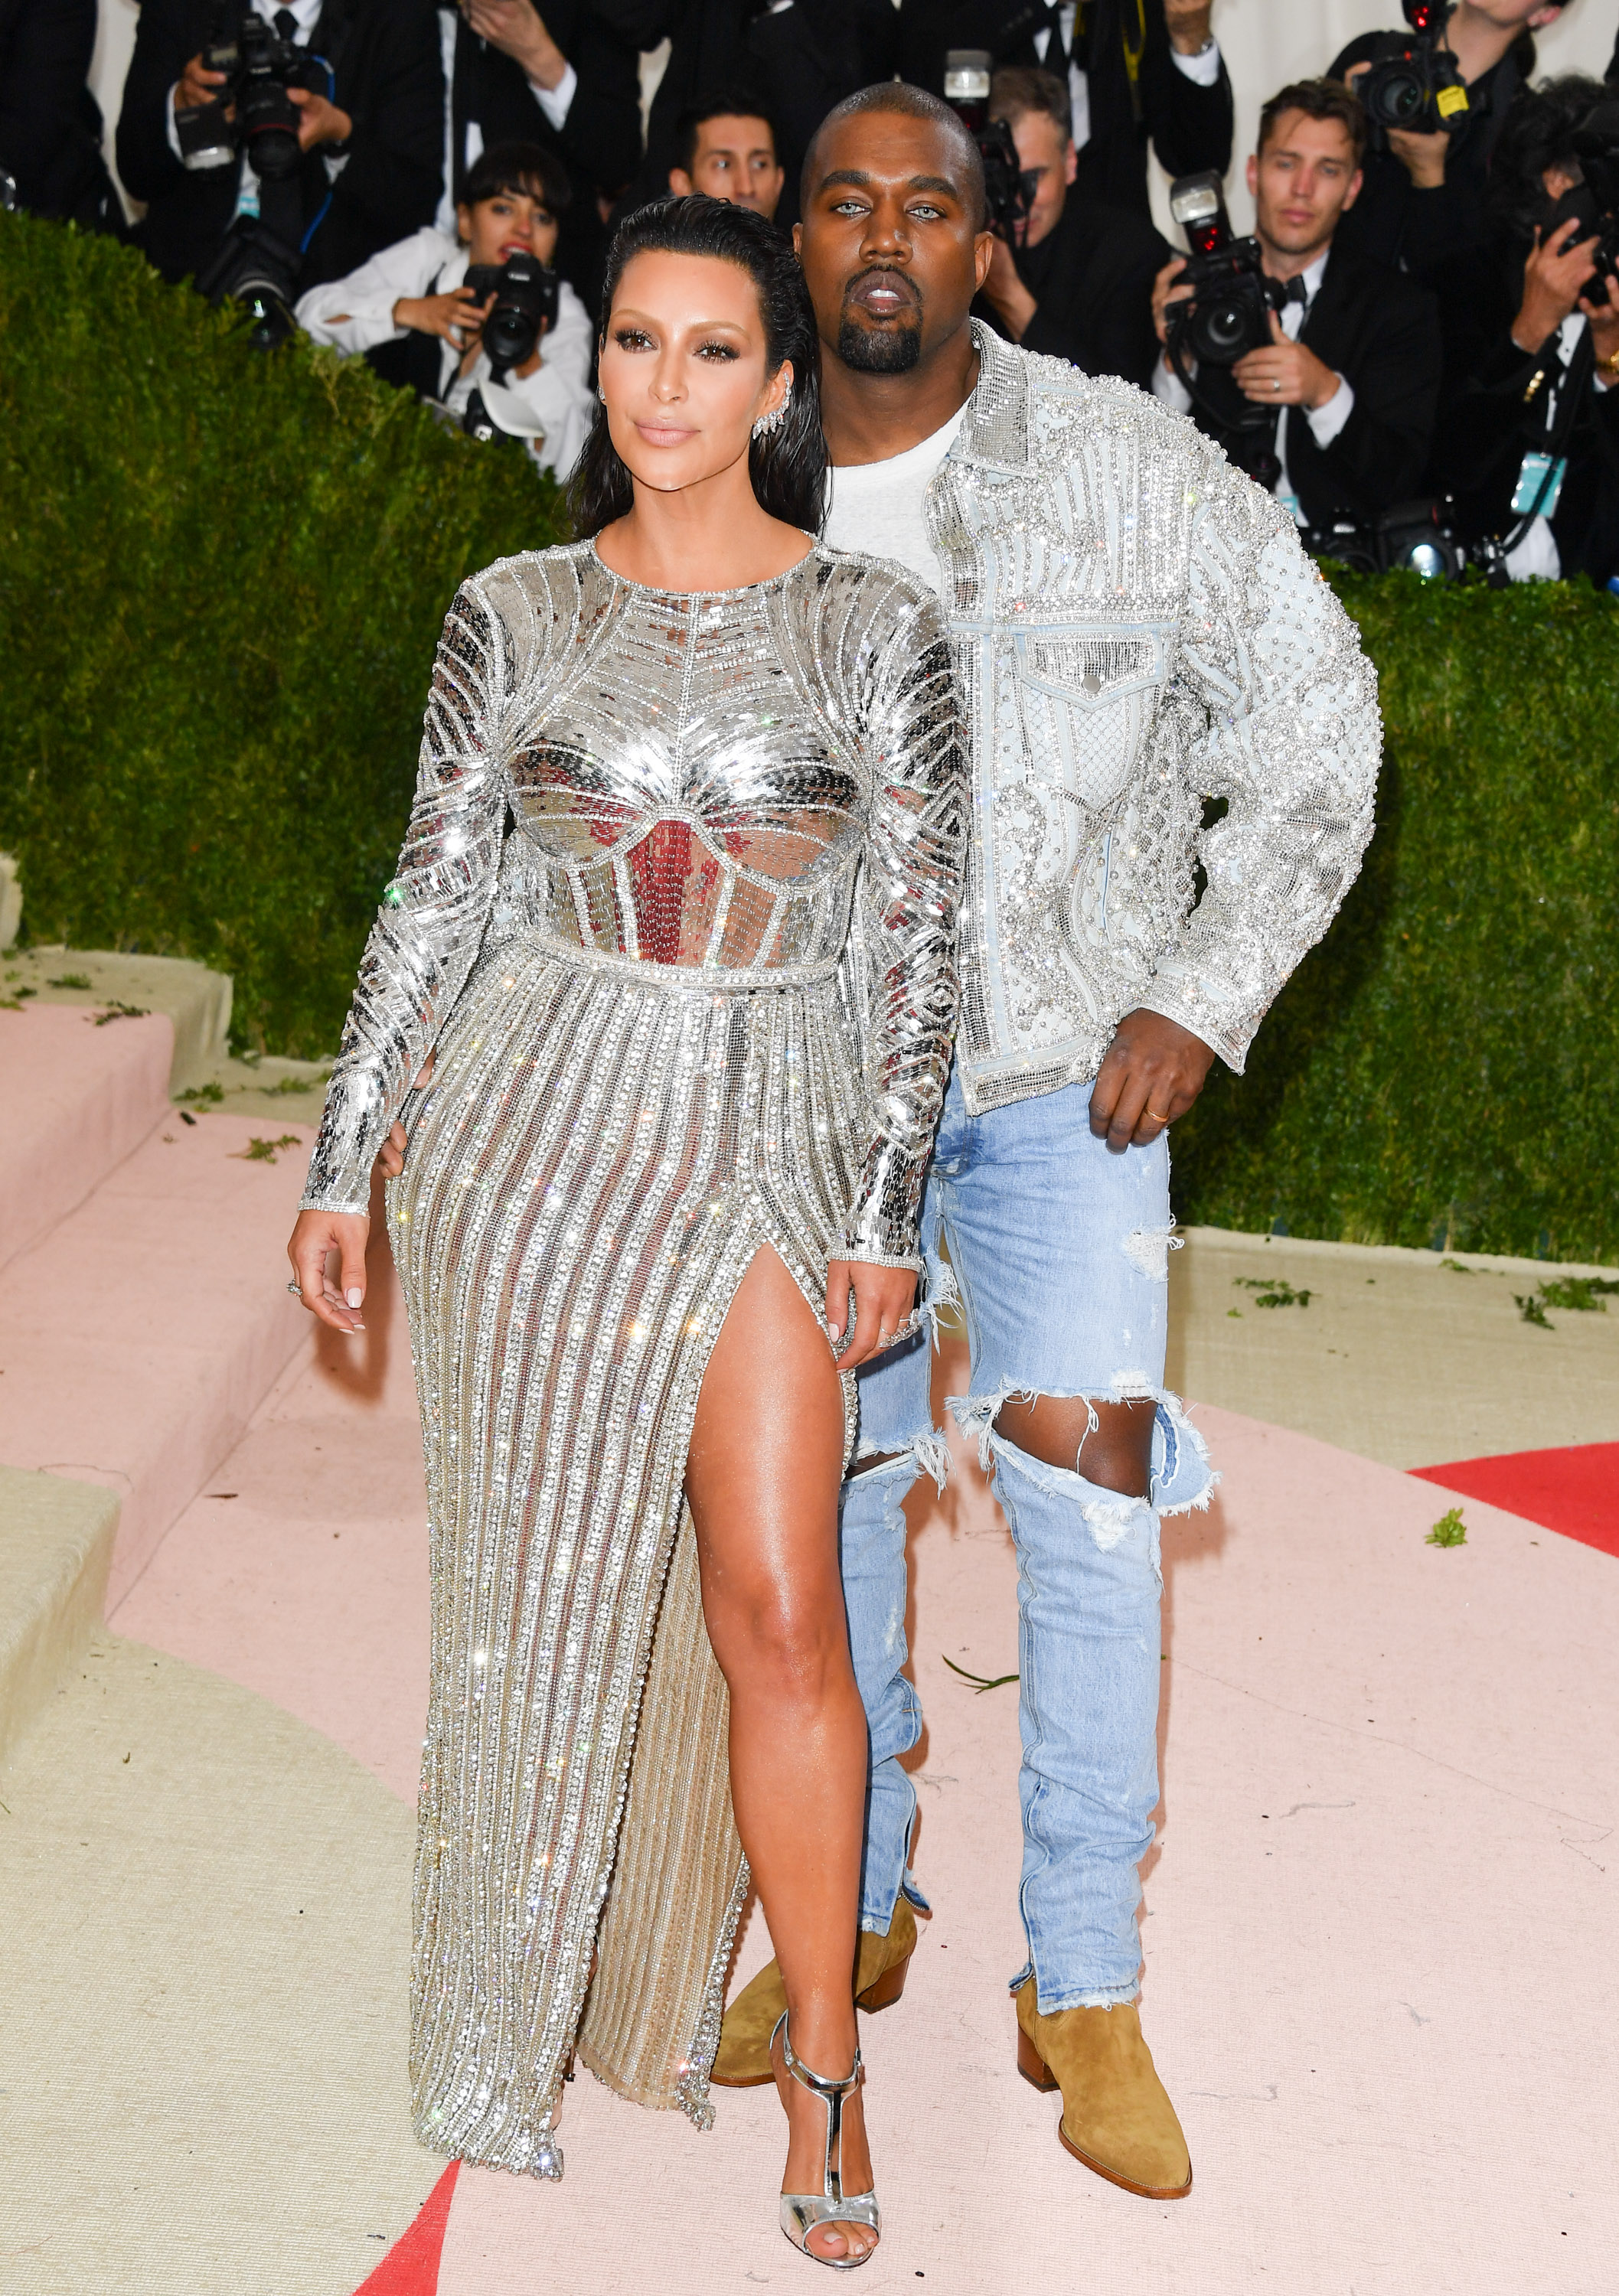 NEW YORK, NY - MAY 02:  Kim Kardashian (L) and Kanye West attend the 'Manus x Machina: Fashion in an Age of Technology' Costume Institute Gala at the Metropolitan Museum of Art on May 2, 2016 in New York City.  (Photo by George Pimentel/WireImage)